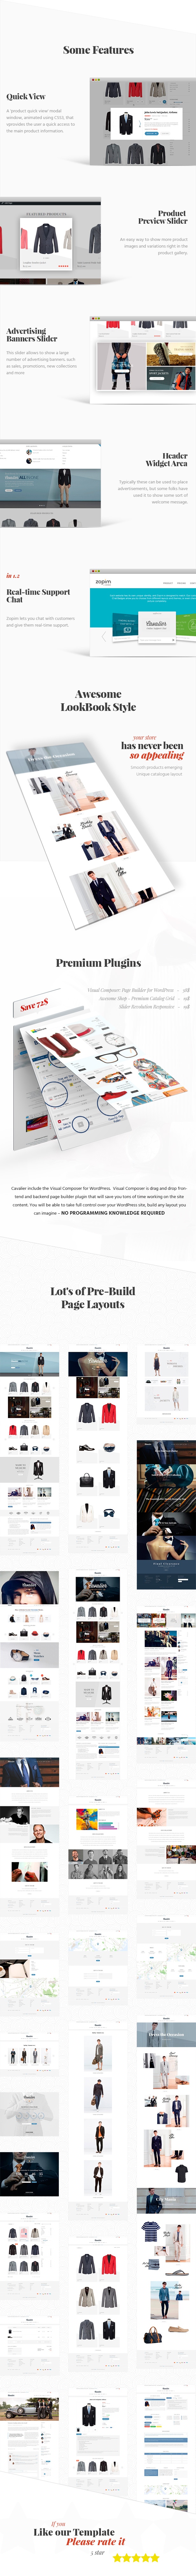 Cavalier - We Sell the Trends. Woocommerce Theme - 7